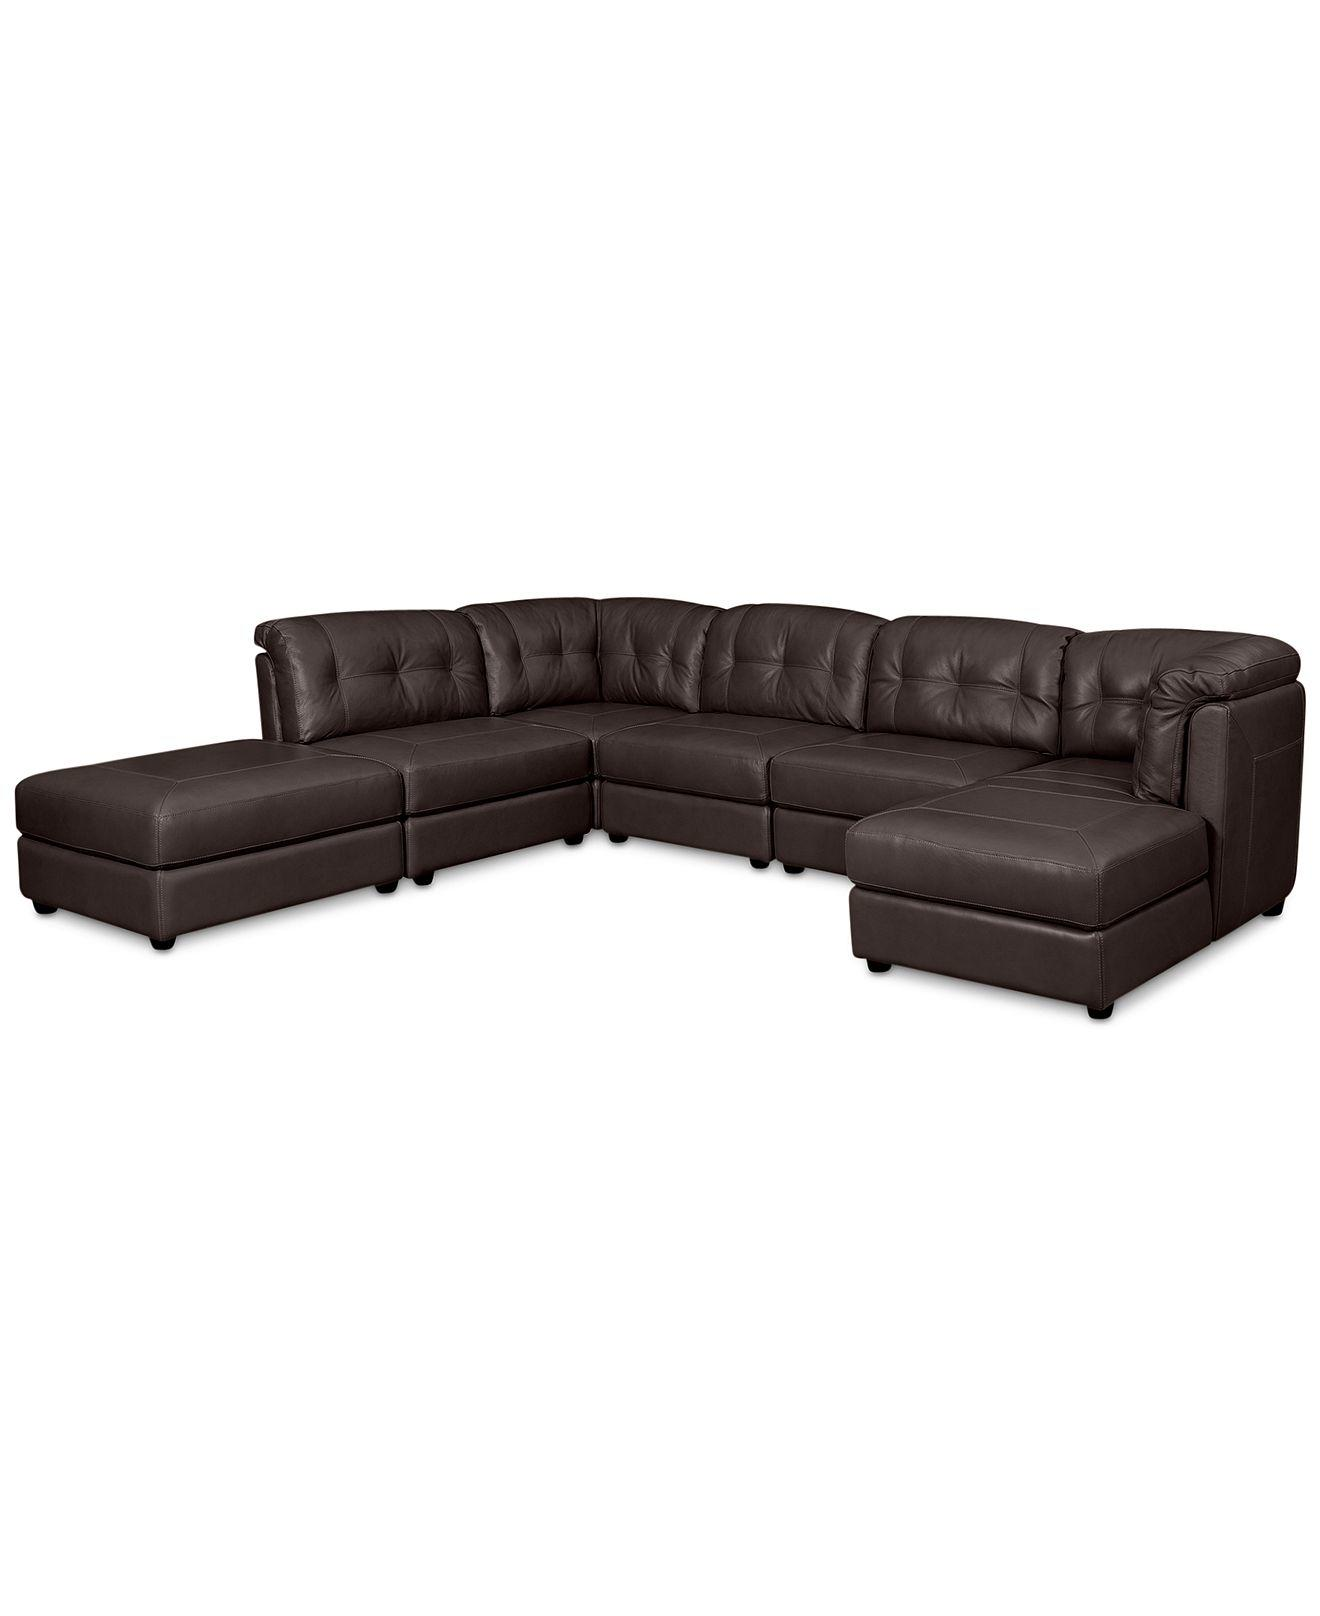 Fabian leather modular sectional sofa from macys cabin for 6 piece modular sectional sofa leather